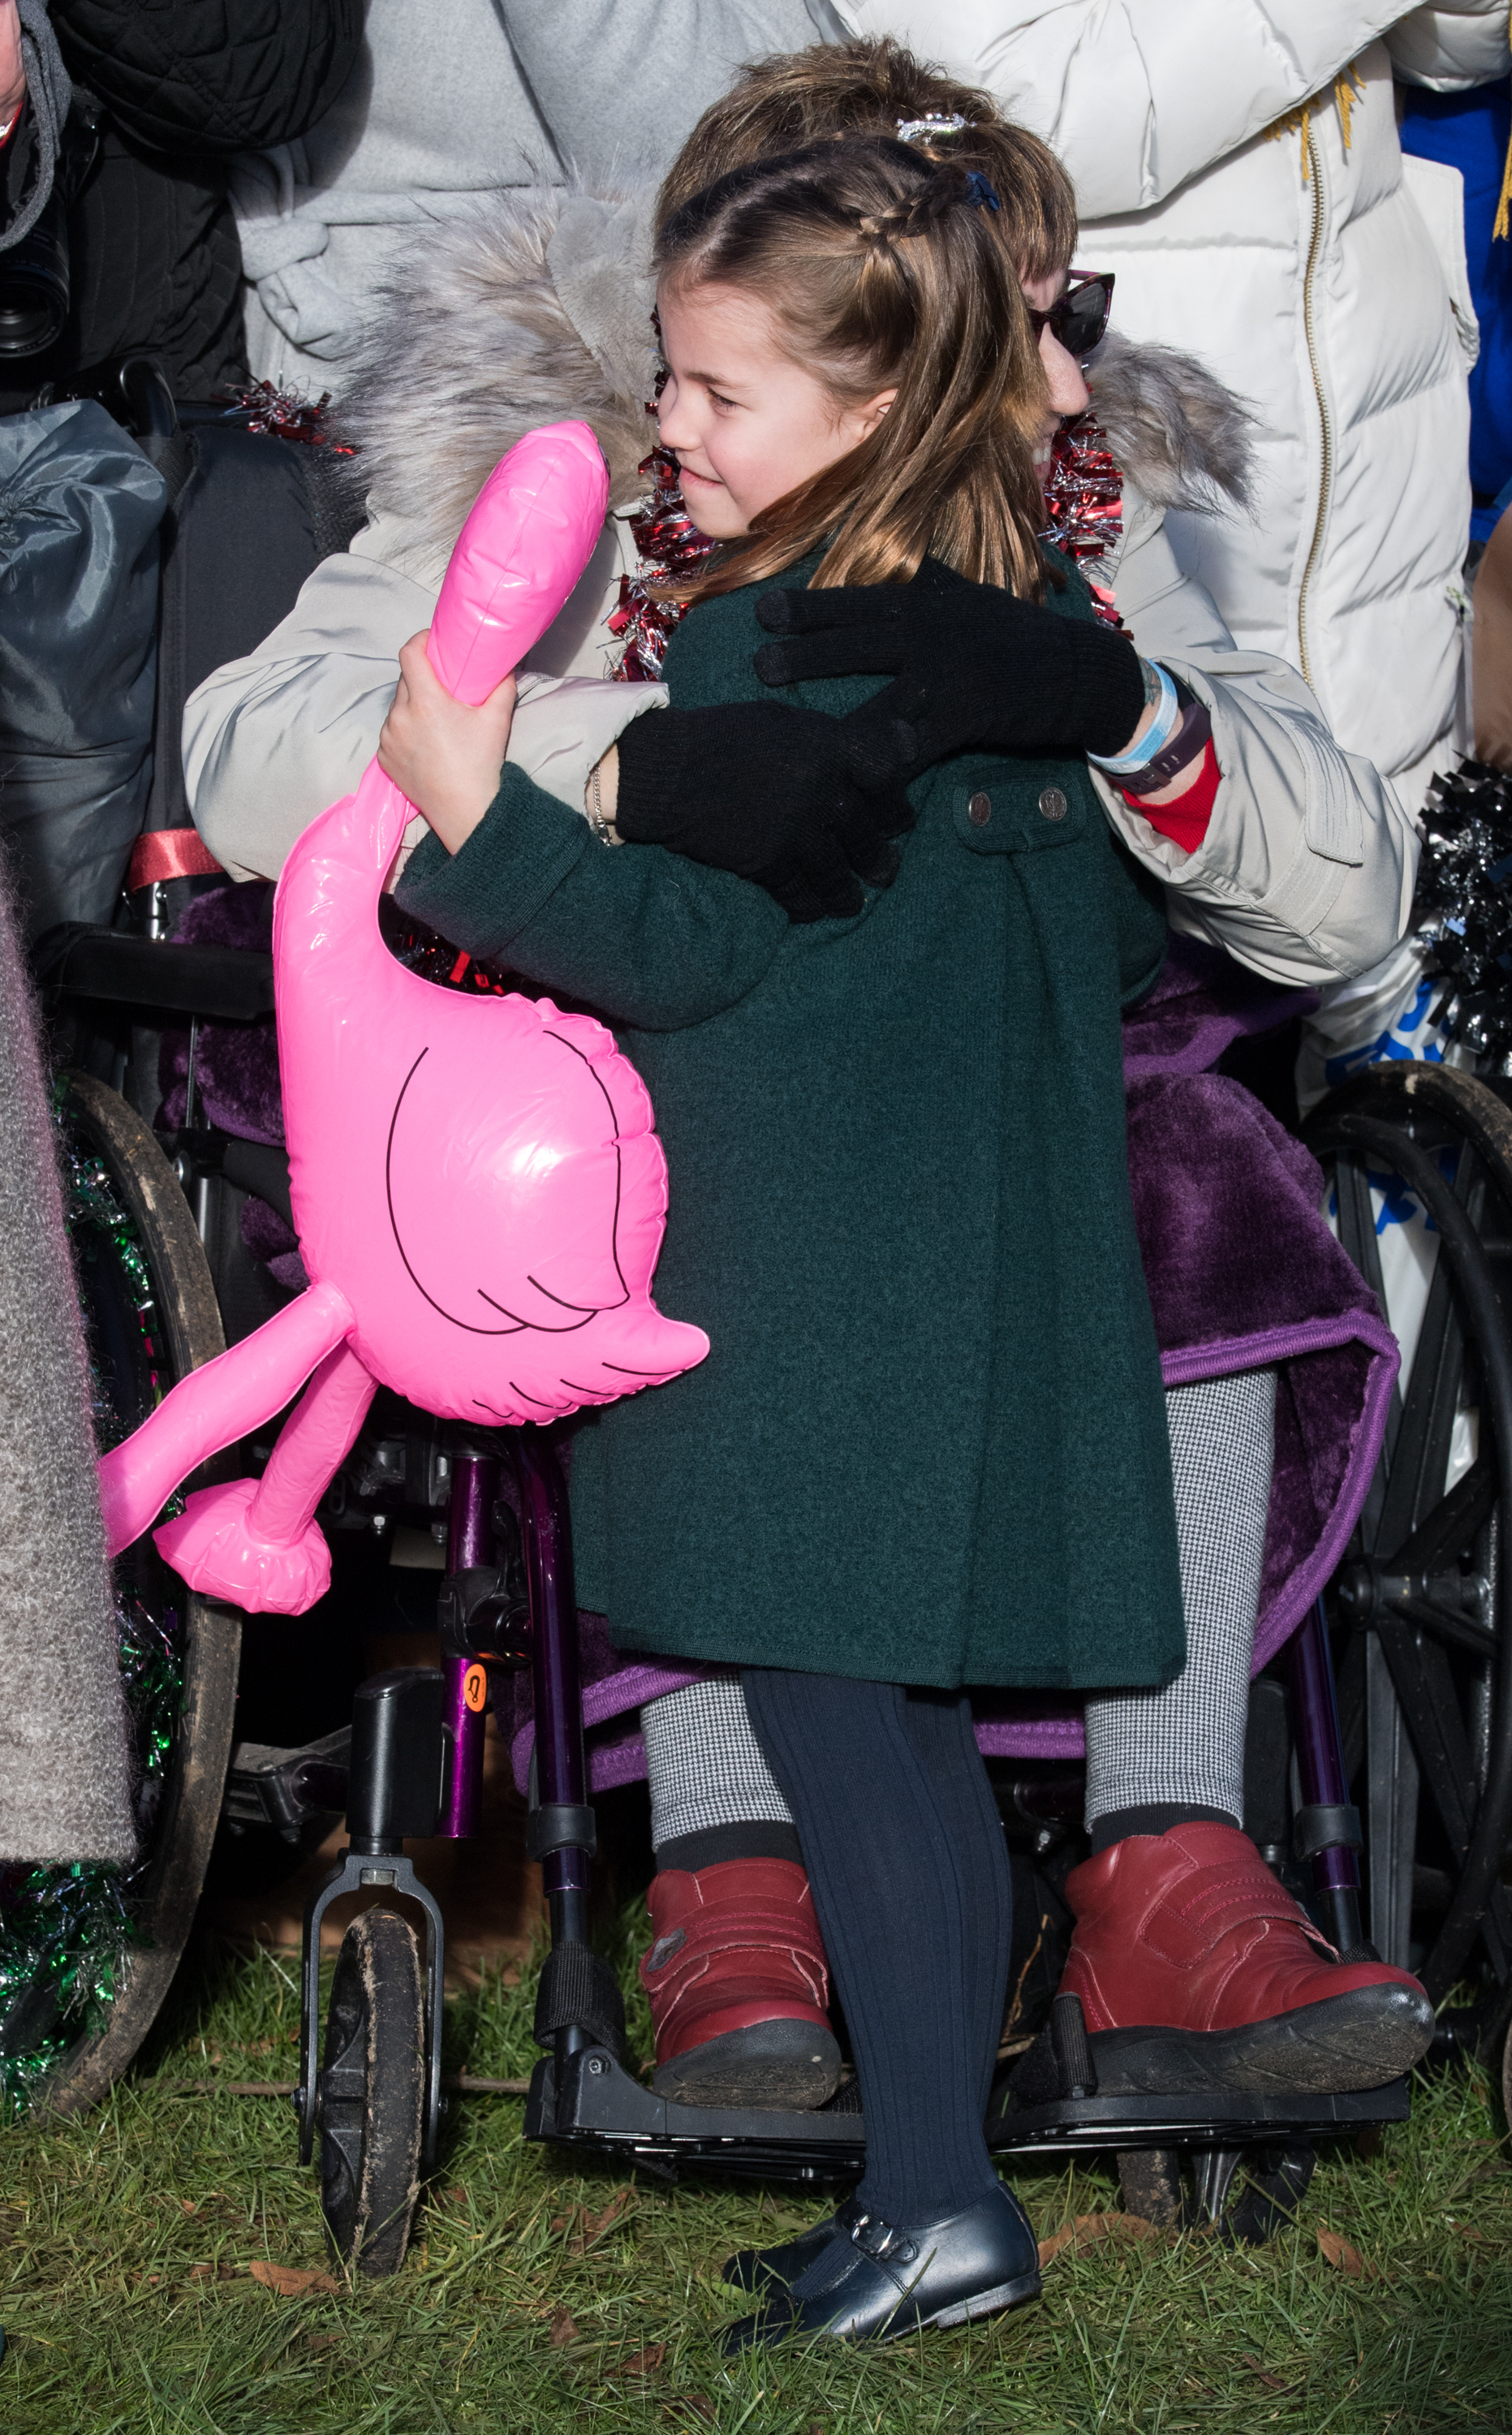 KING'S LYNN, ENGLAND - DECEMBER 25: Princess Charlotte of Cambridge is given a hug by a wellwisher as she attends the Christmas Day Church service at Church of St Mary Magdalene on the Sandringham estate on December 25, 2019 in King's Lynn, United Kingdom. (Photo by Pool/Samir Hussein/WireImage)